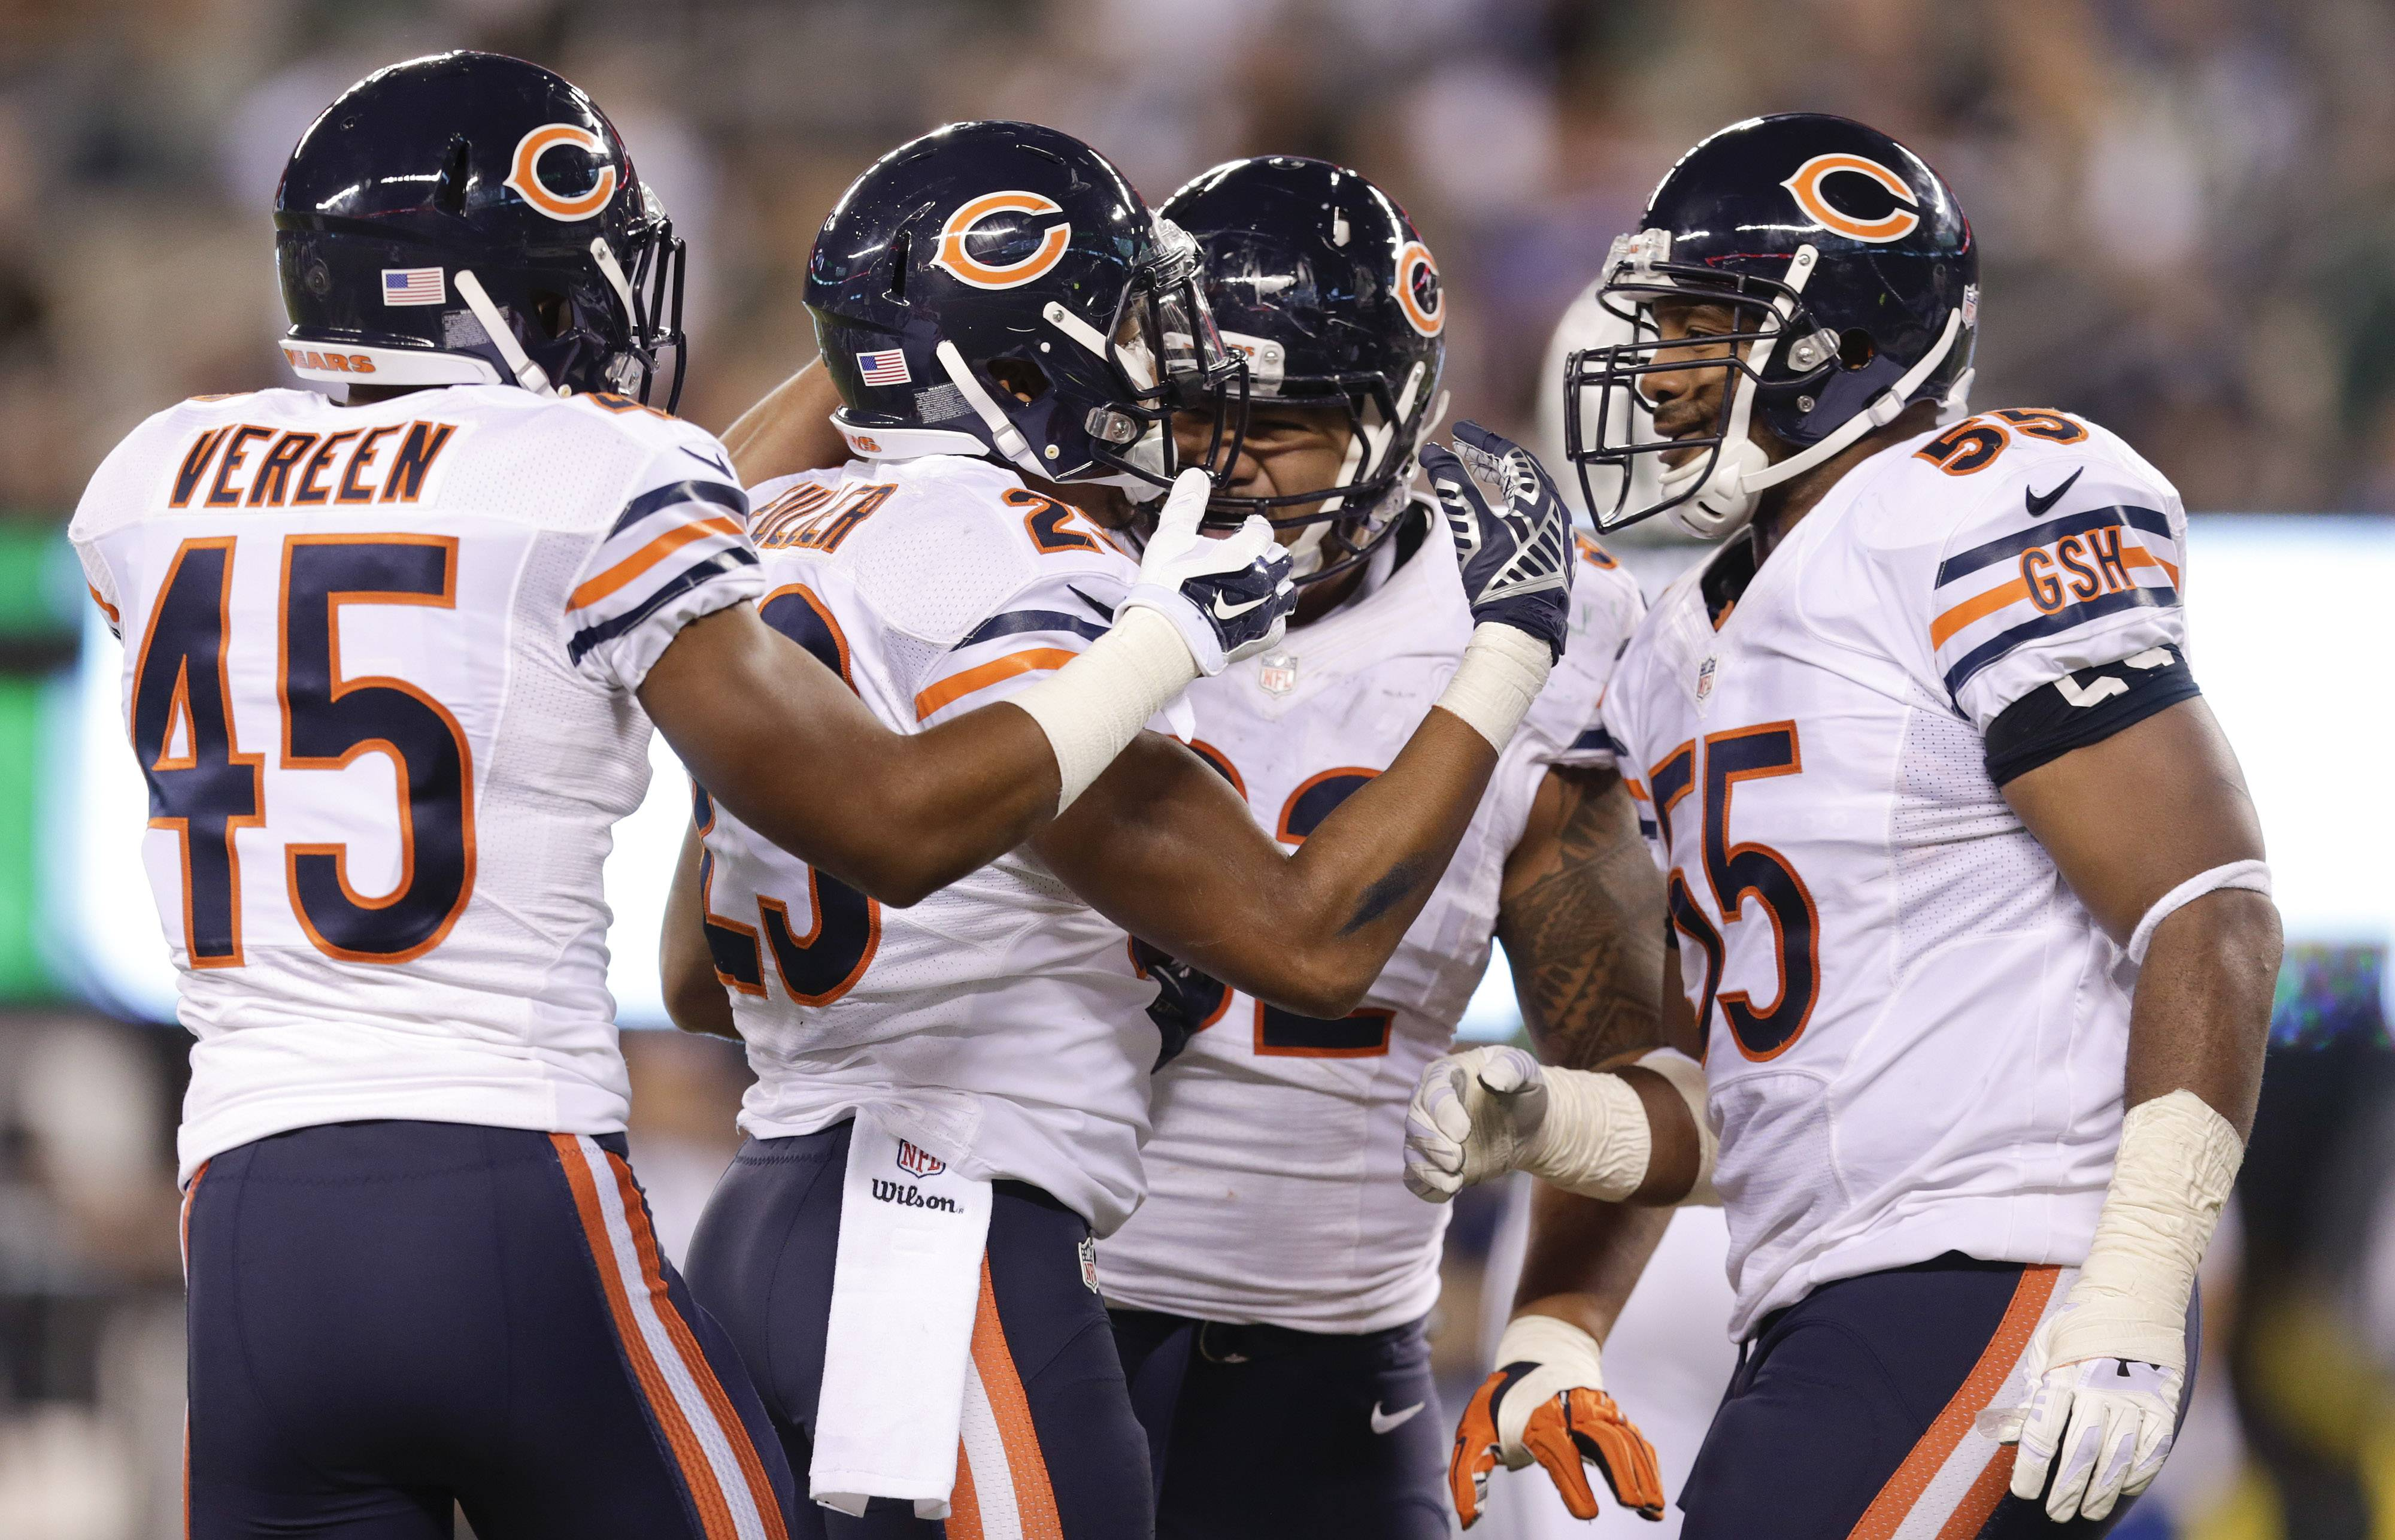 Bears cornerback Kyle Fuller celebrates with teammates after intercepting a pass in the end zone Monday night against the New York Jets. It was Fuller's league-leading third interception.